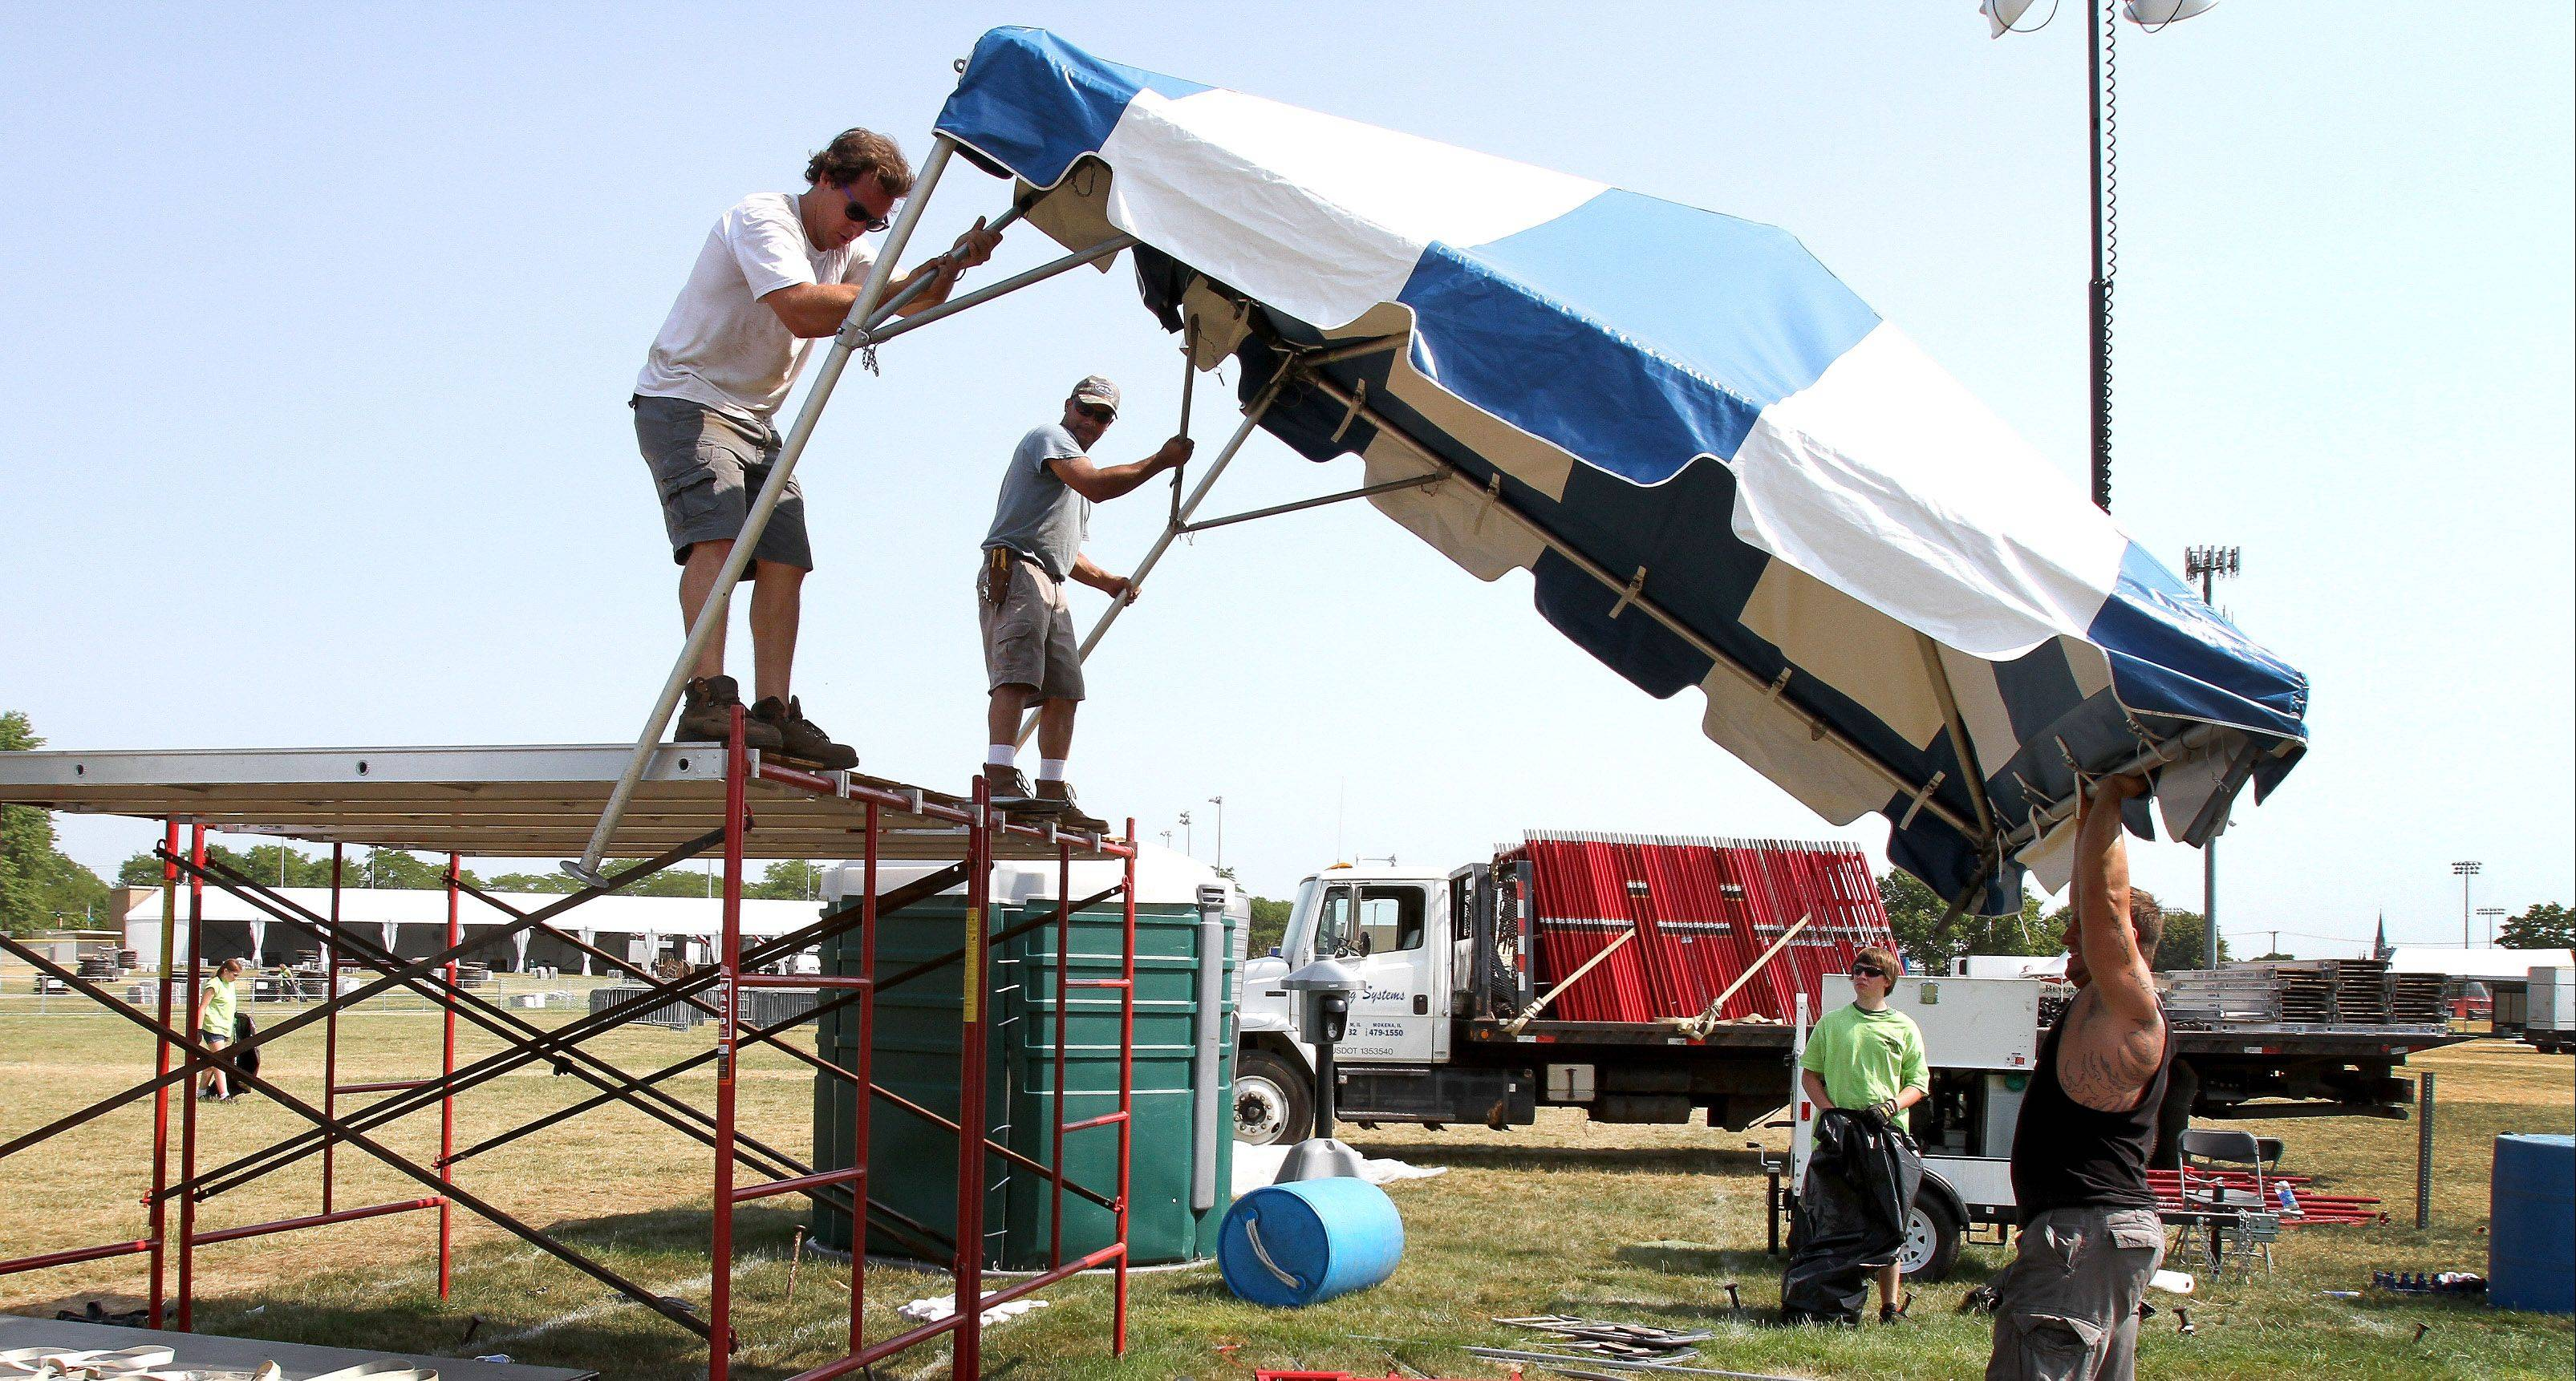 Crews work Thursday to clean up Naperville's Ribfest grounds. Festival organizers say extreme heat and the aftermath of severe storms combined to cut attendance by nearly 25 percent.